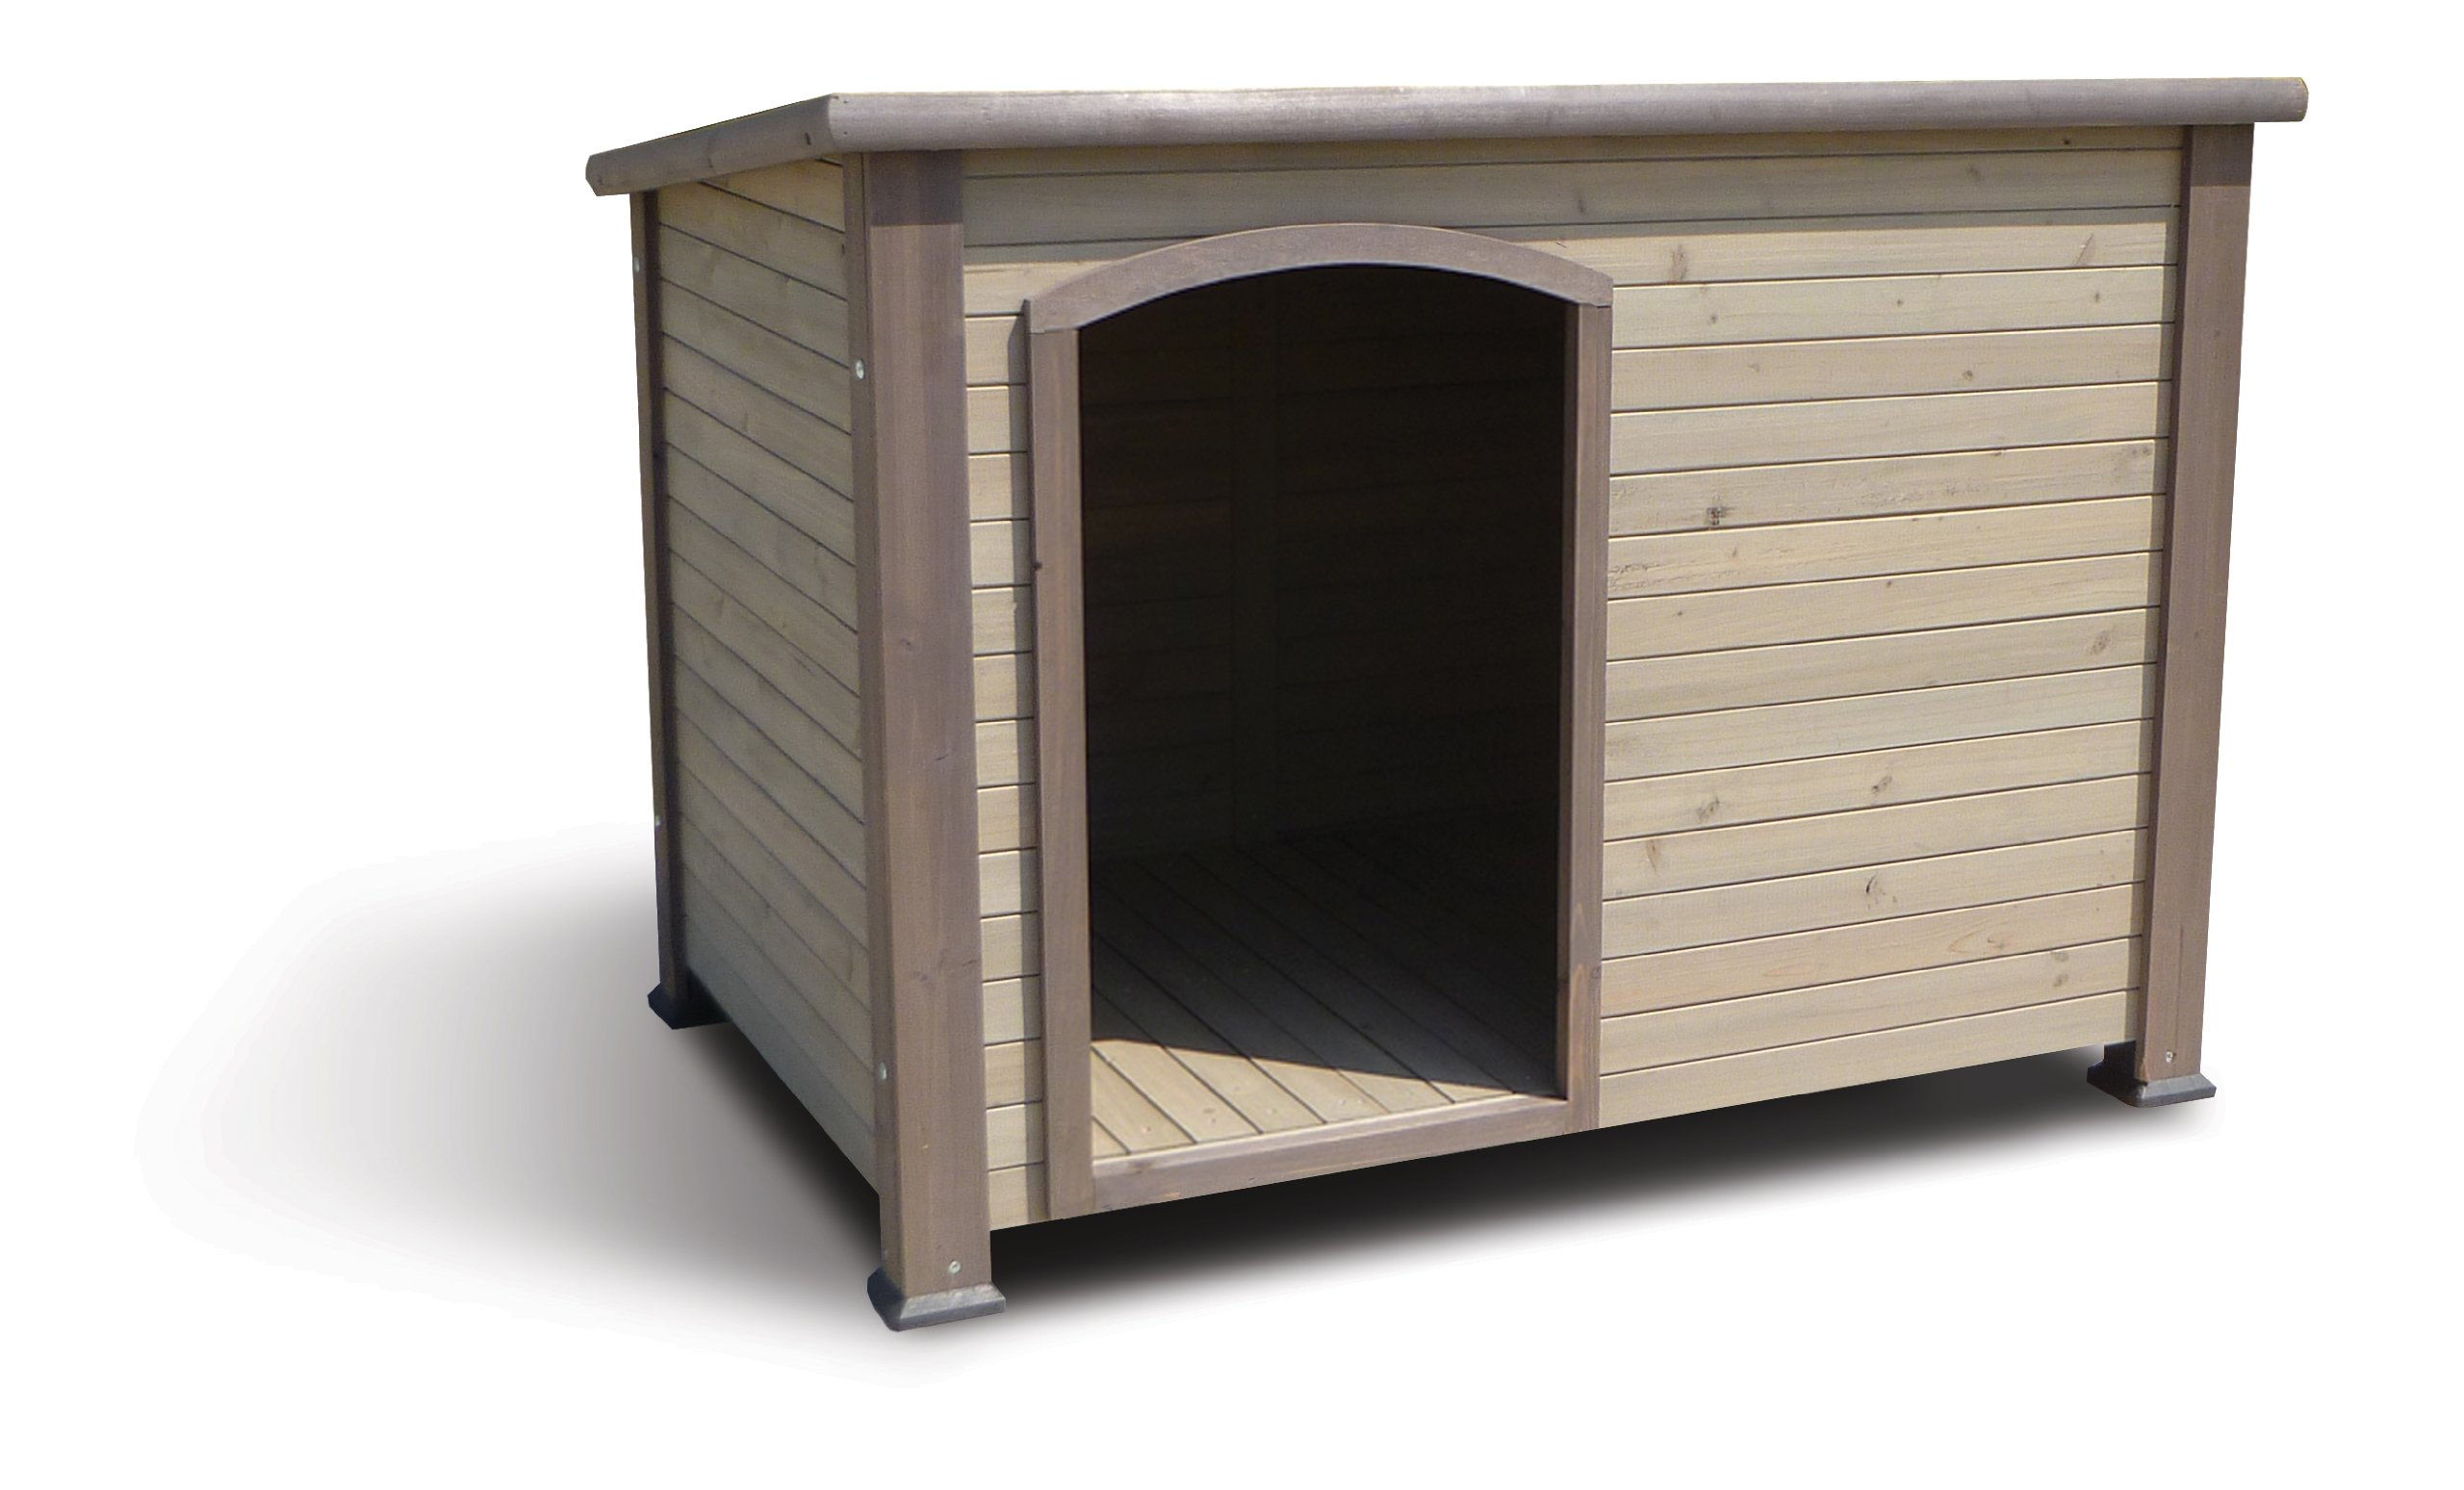 Precision Pet Extreme Log Cabin Large 45.5 in. x 33 in. x 32.8 in. Taupe